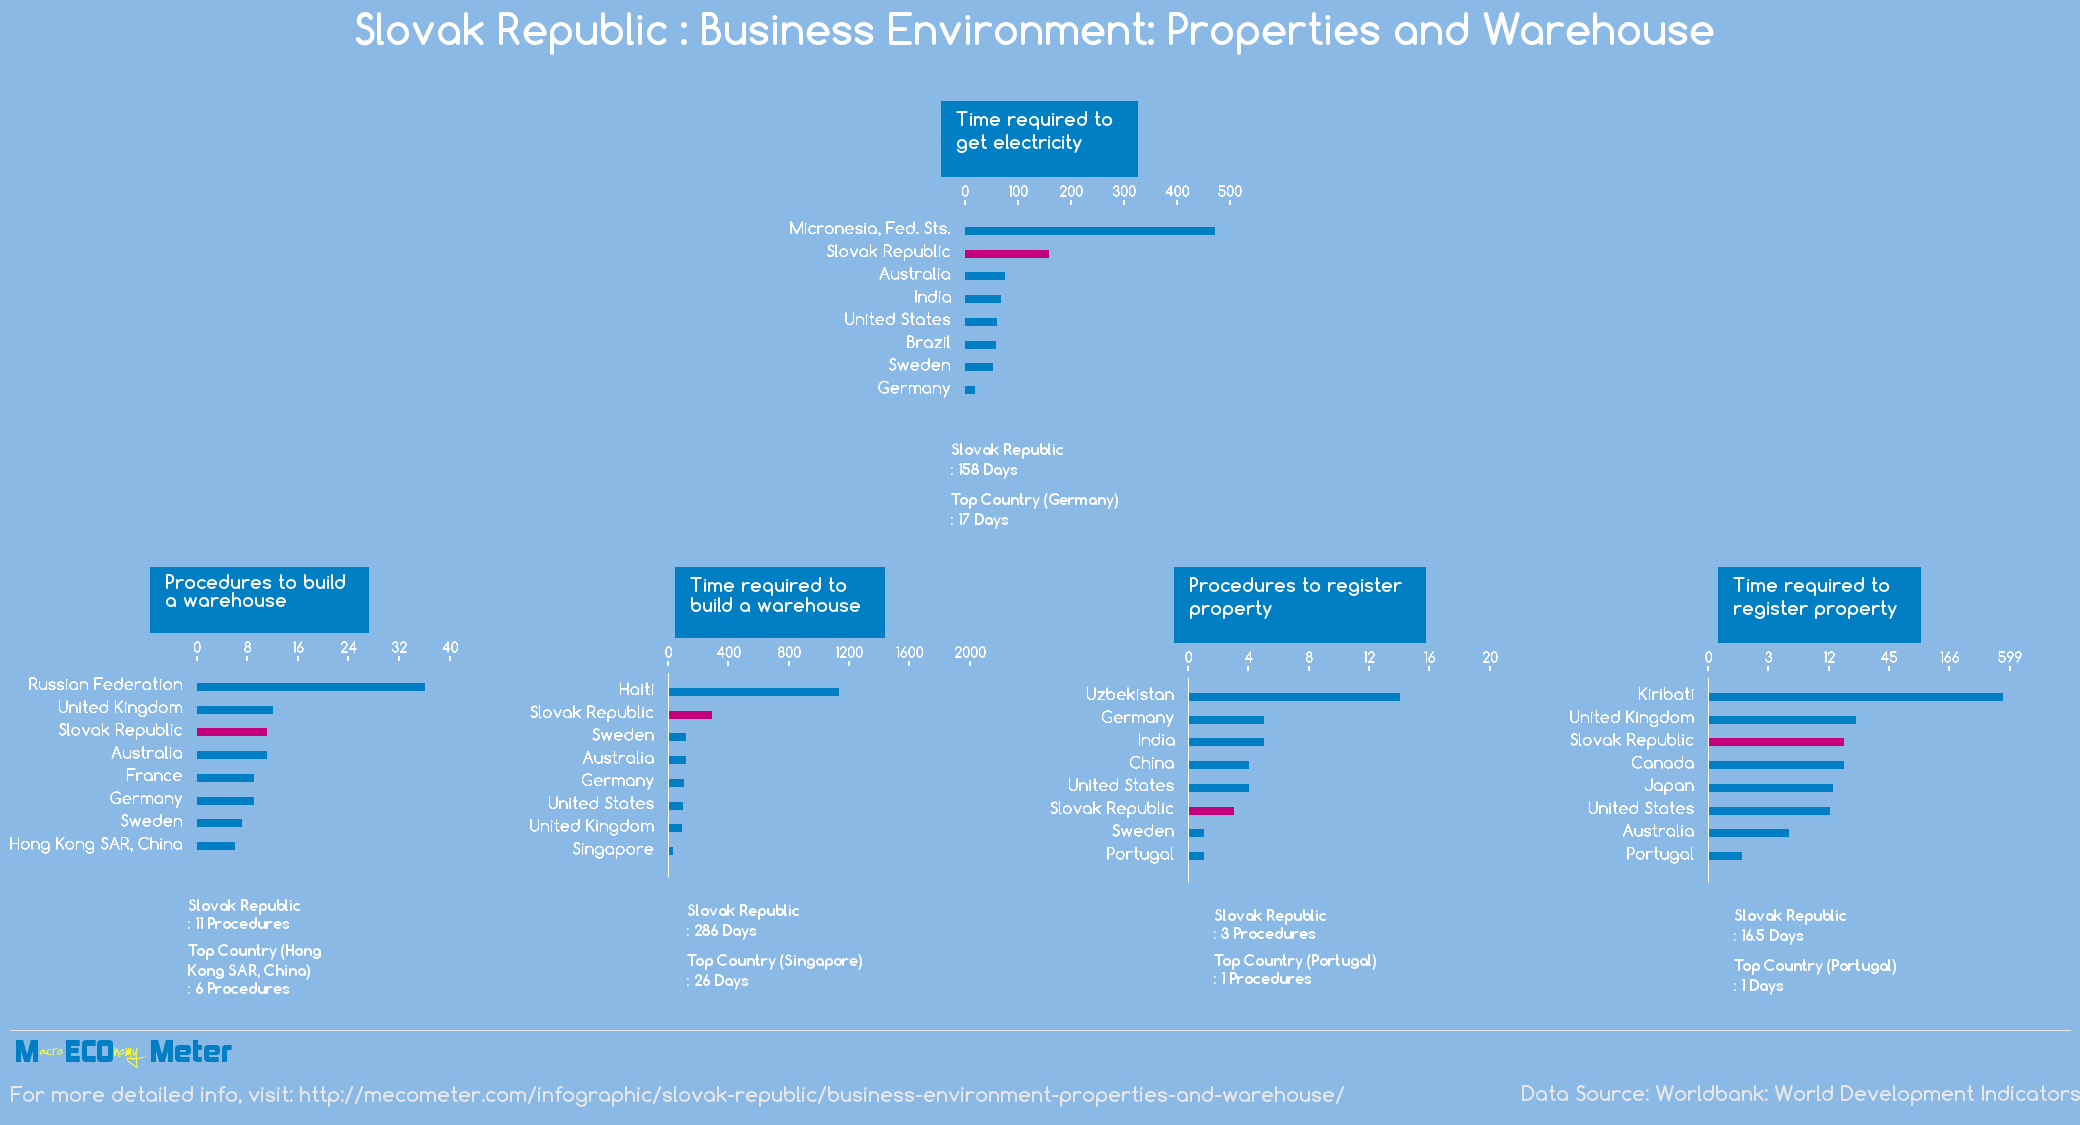 Slovak Republic : Business Environment: Properties and Warehouse